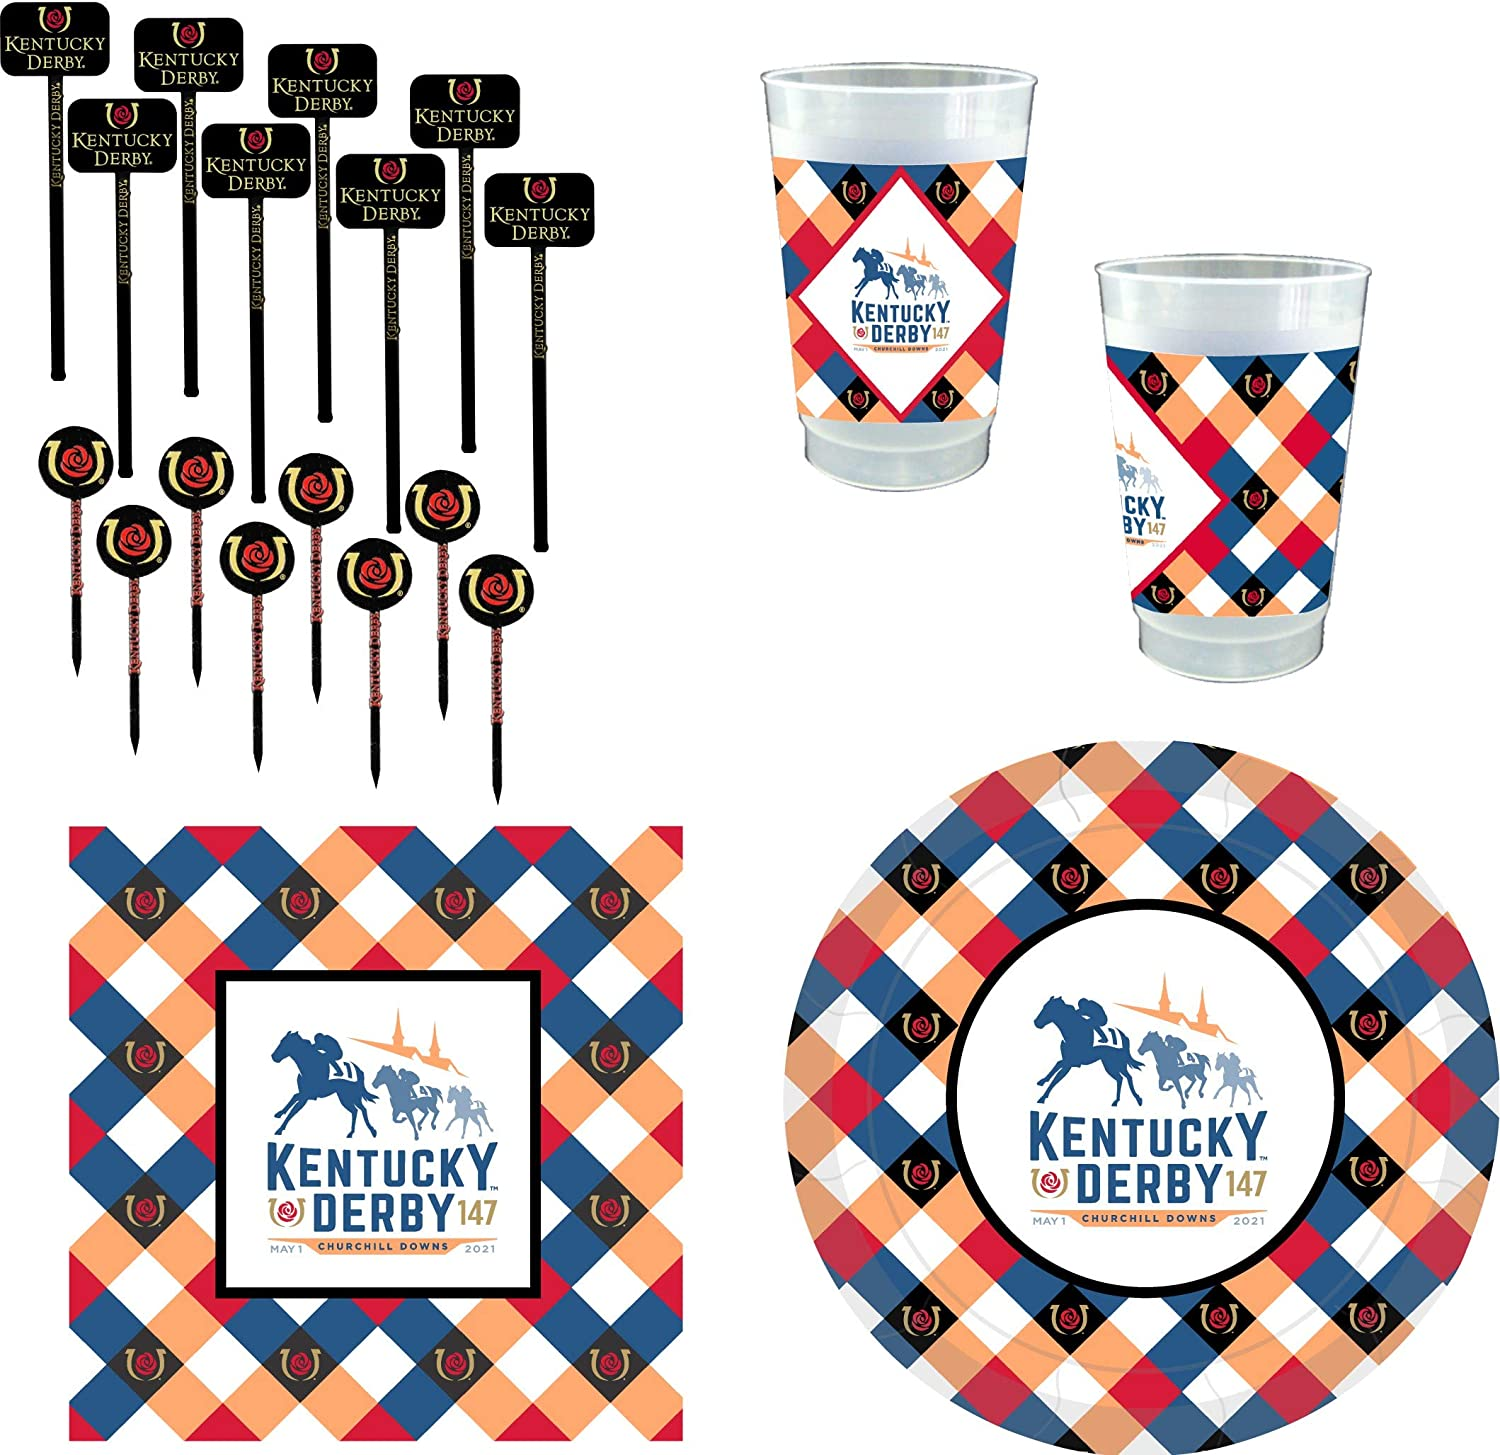 147th 人気海外一番 2021 (人気激安) Kentucky Derby Party Supplies p 24 - for Guests 112